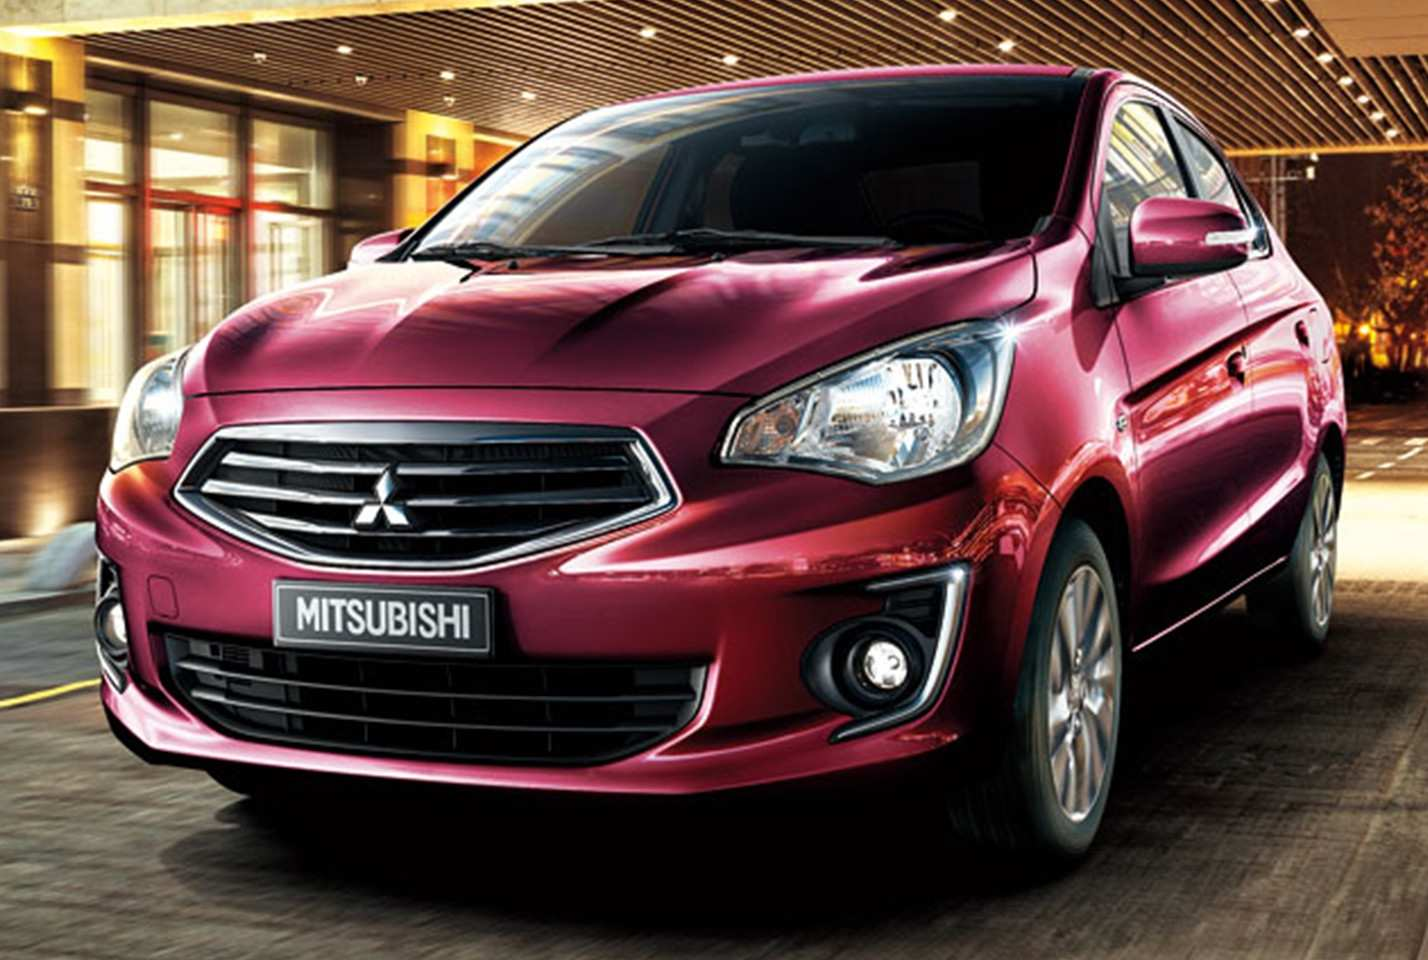 49 Best Review 2020 Mitsubishi Mirage Research New by 2020 Mitsubishi Mirage